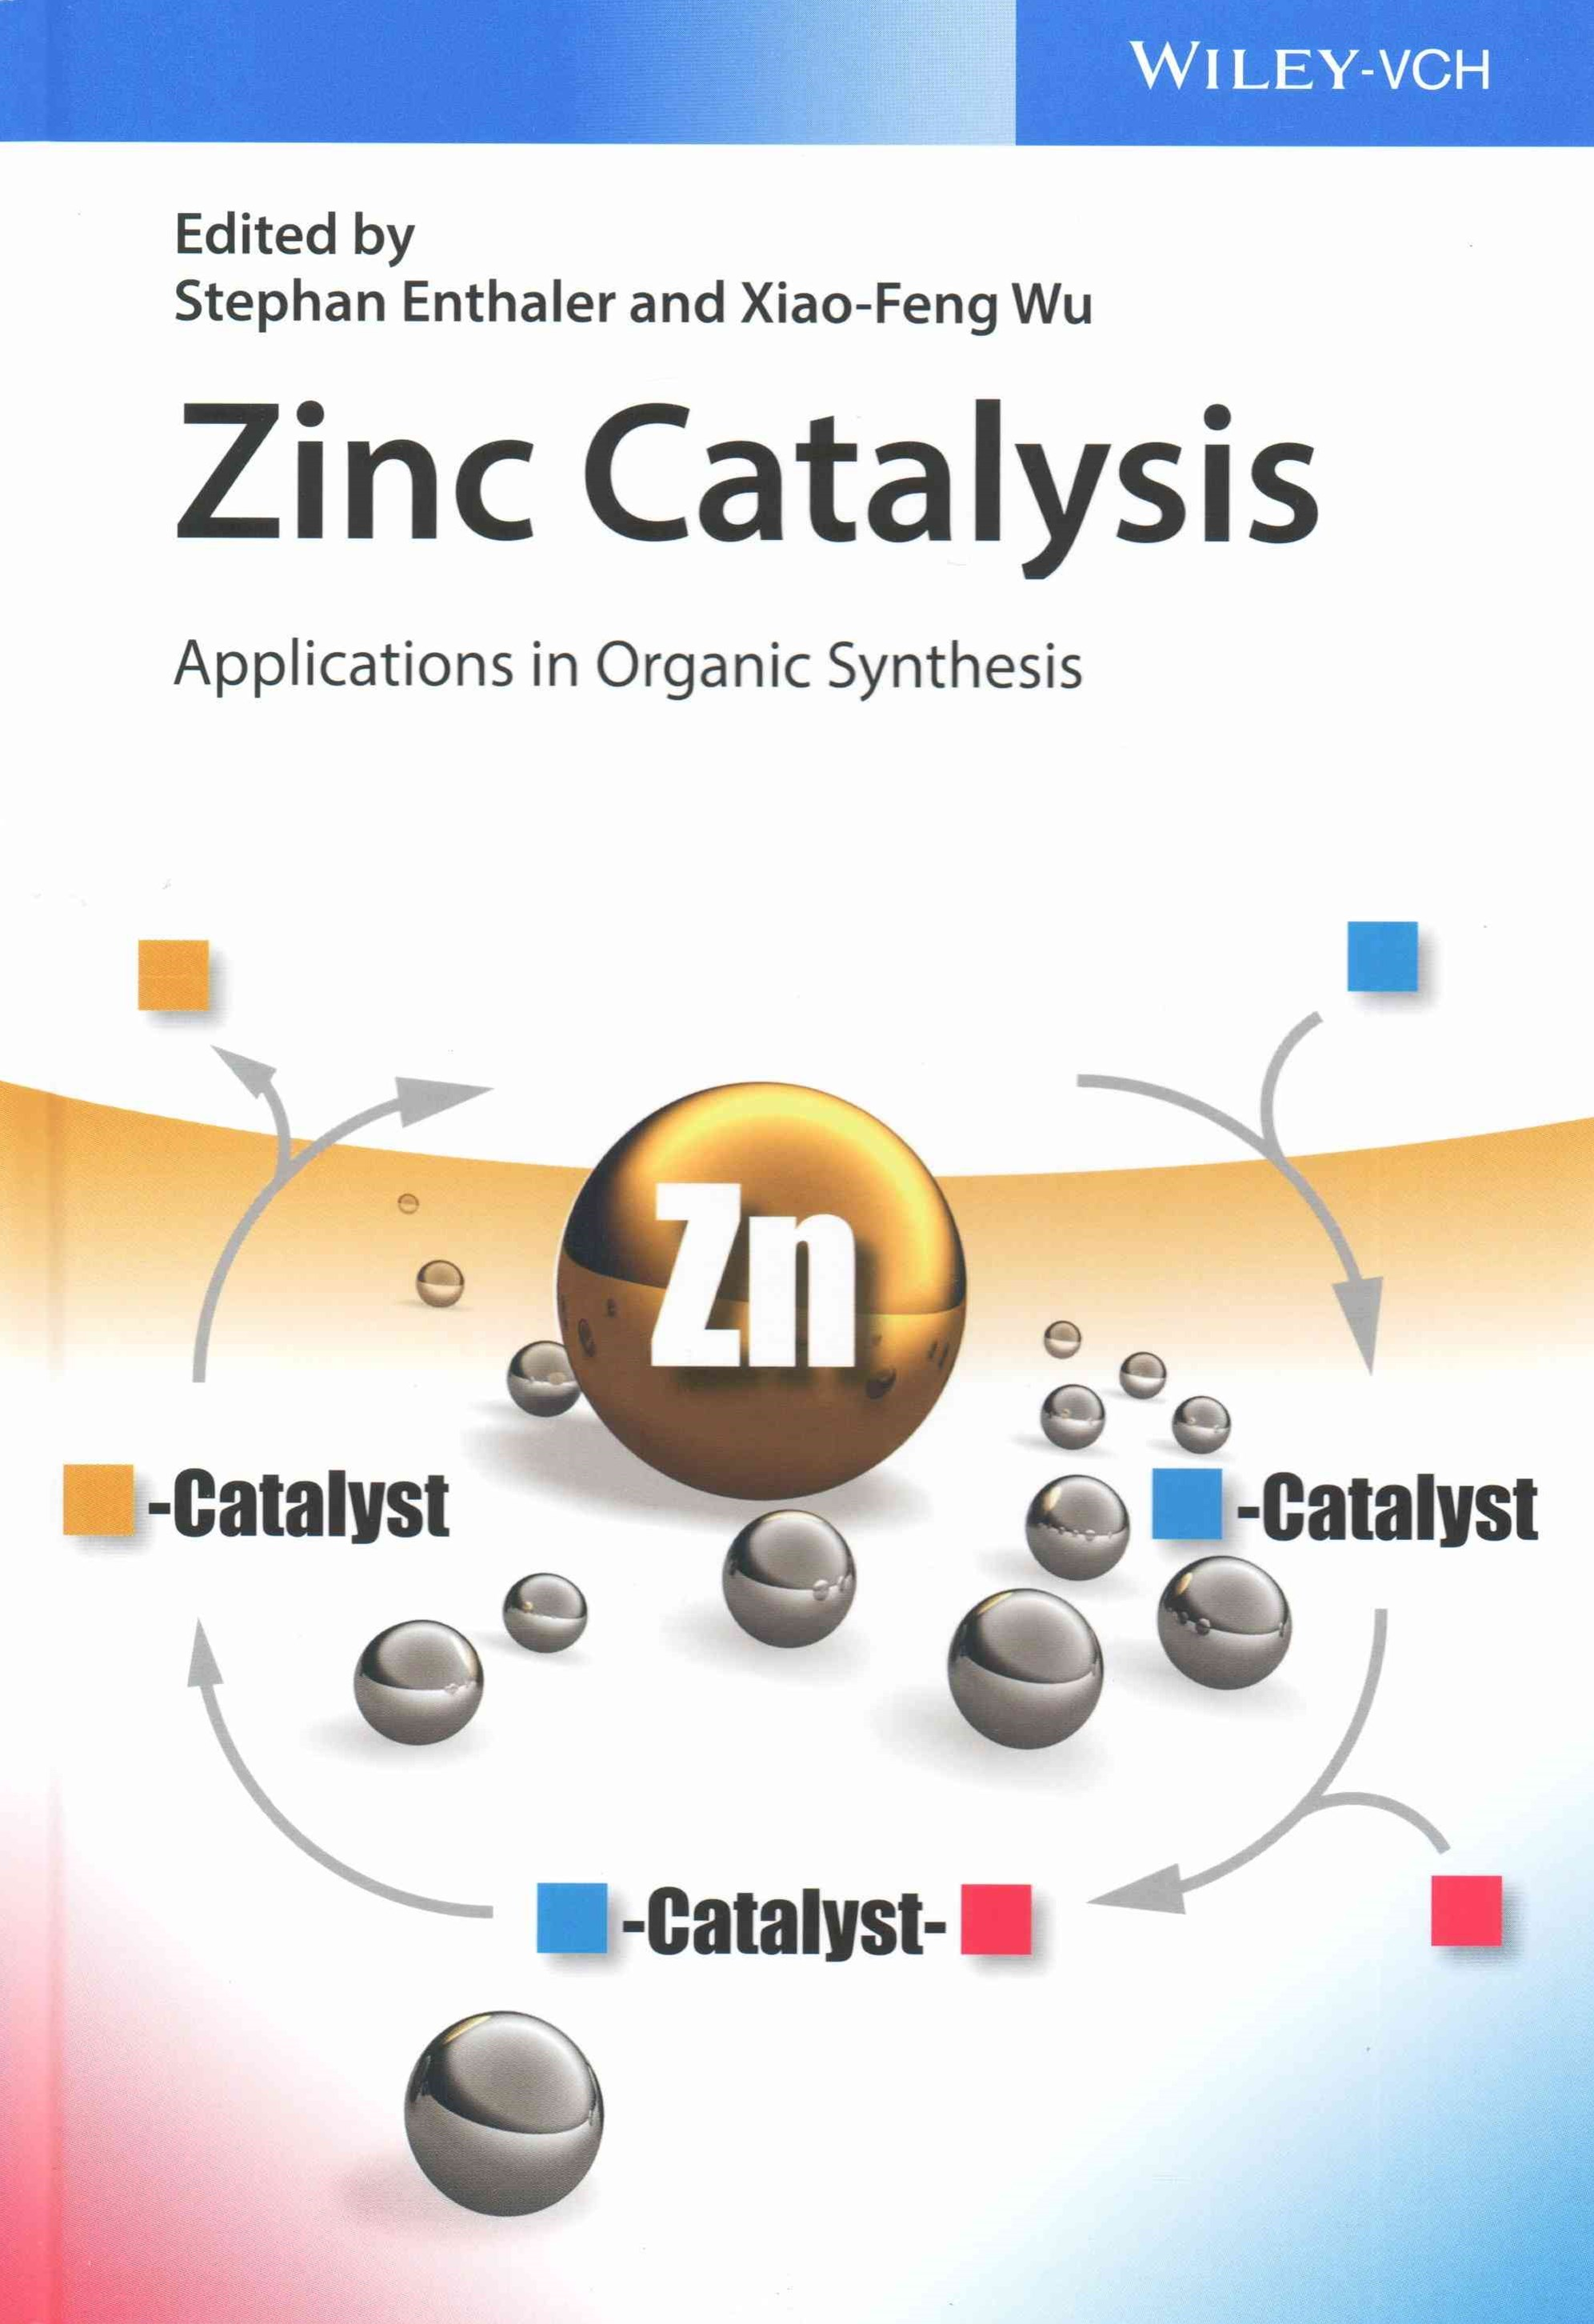 Zinc Catalysis - Applications in Organic Synthesis